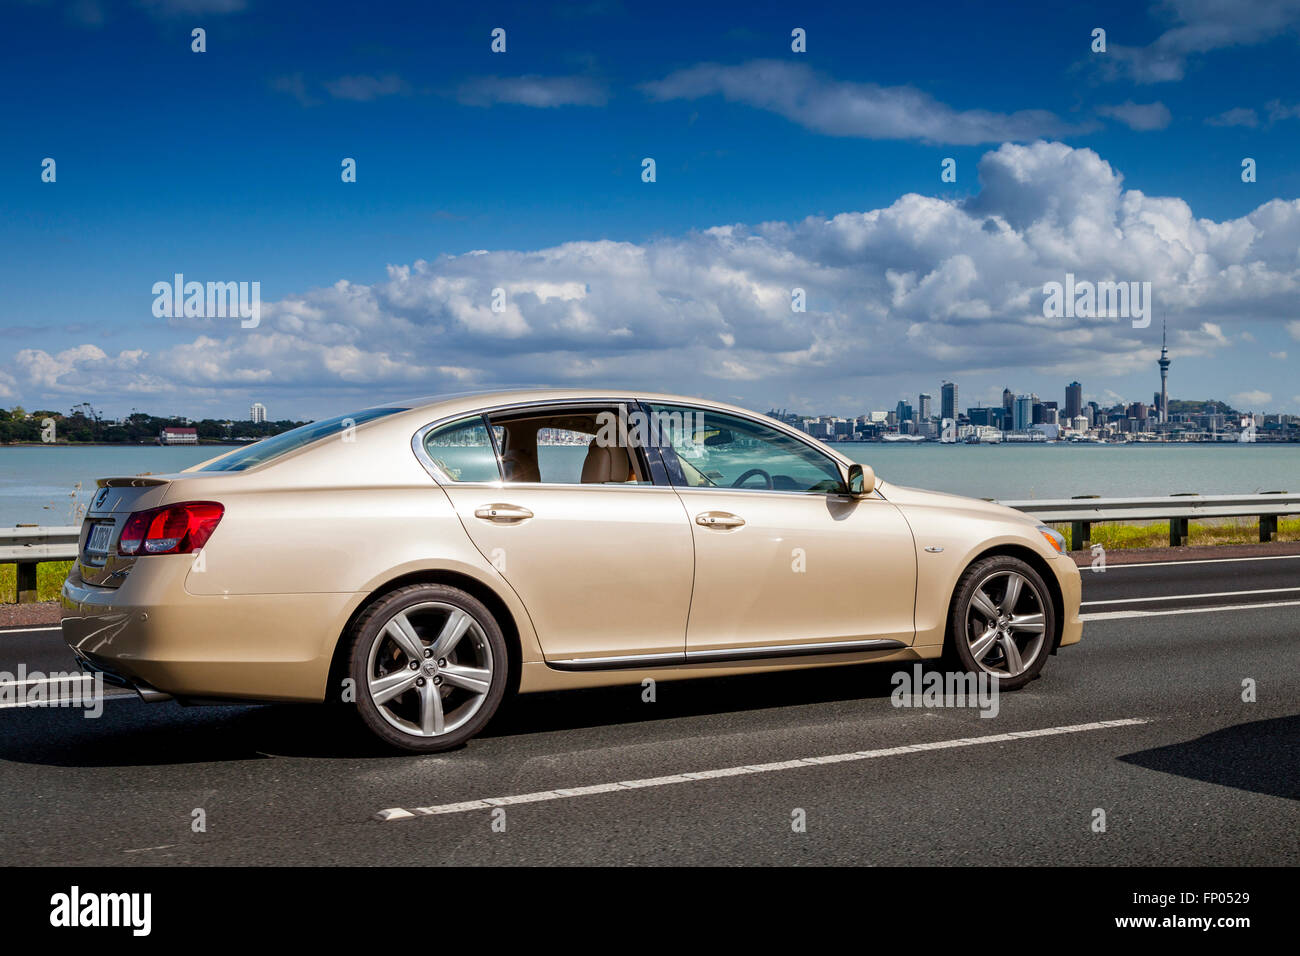 A Car Travelling Over The Auckland Harbour Bridge, Auckland, New Zealand - Stock Image